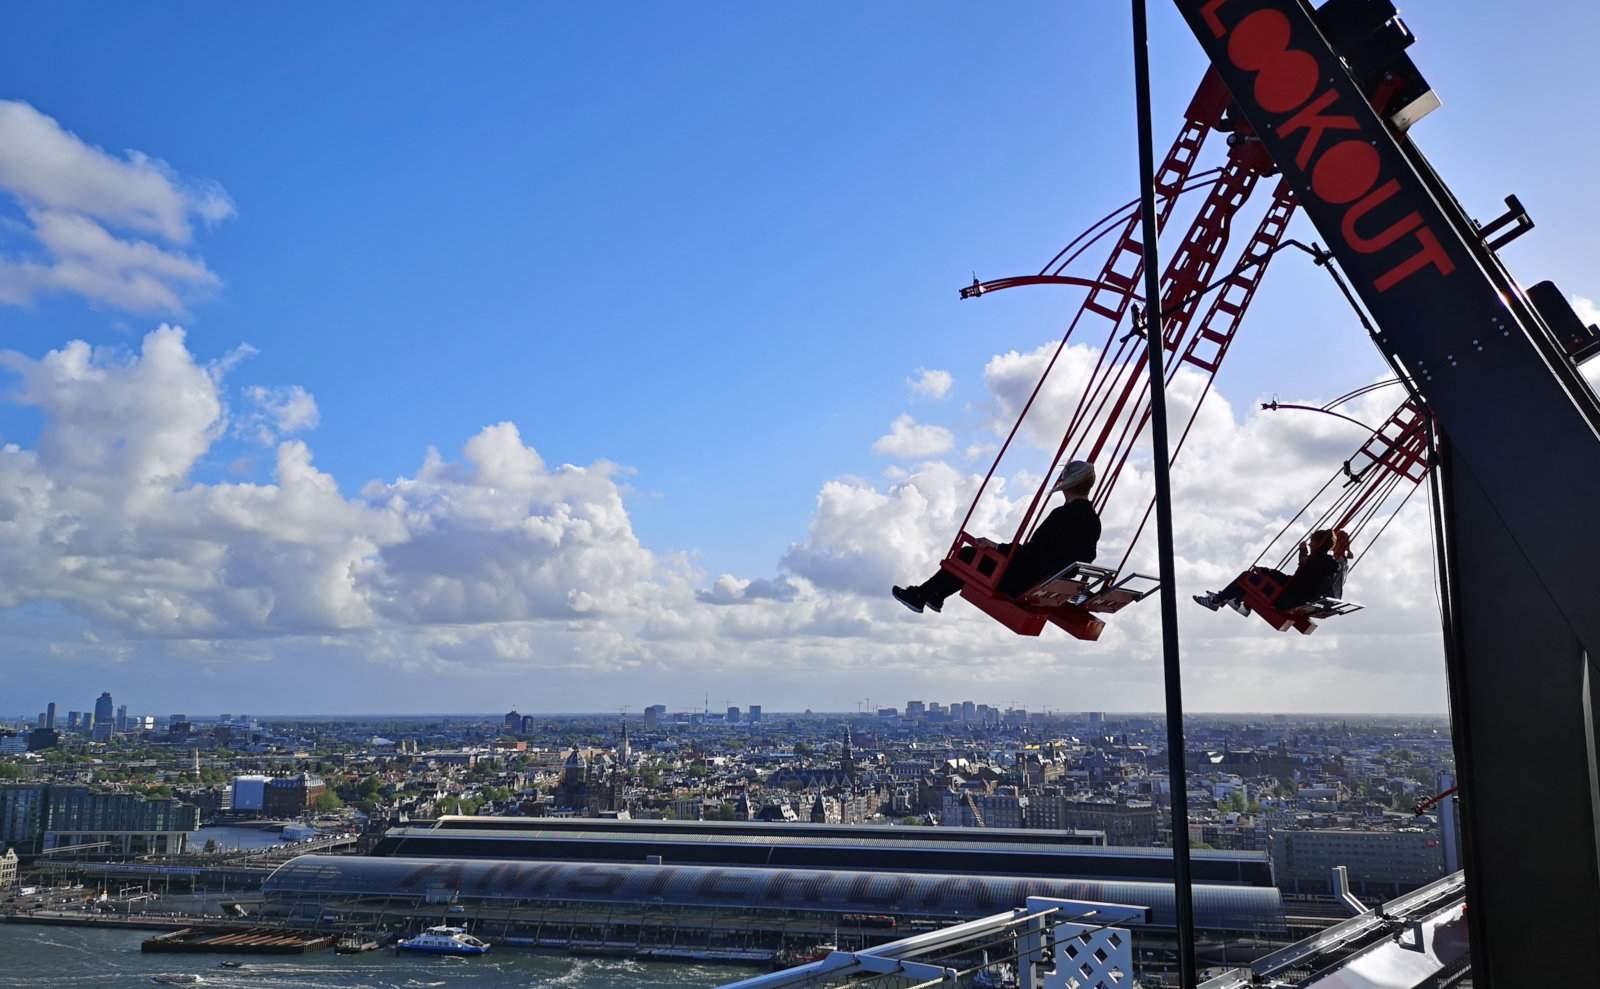 How to Experience A'DAM Toren AKA Amsterdam Tower